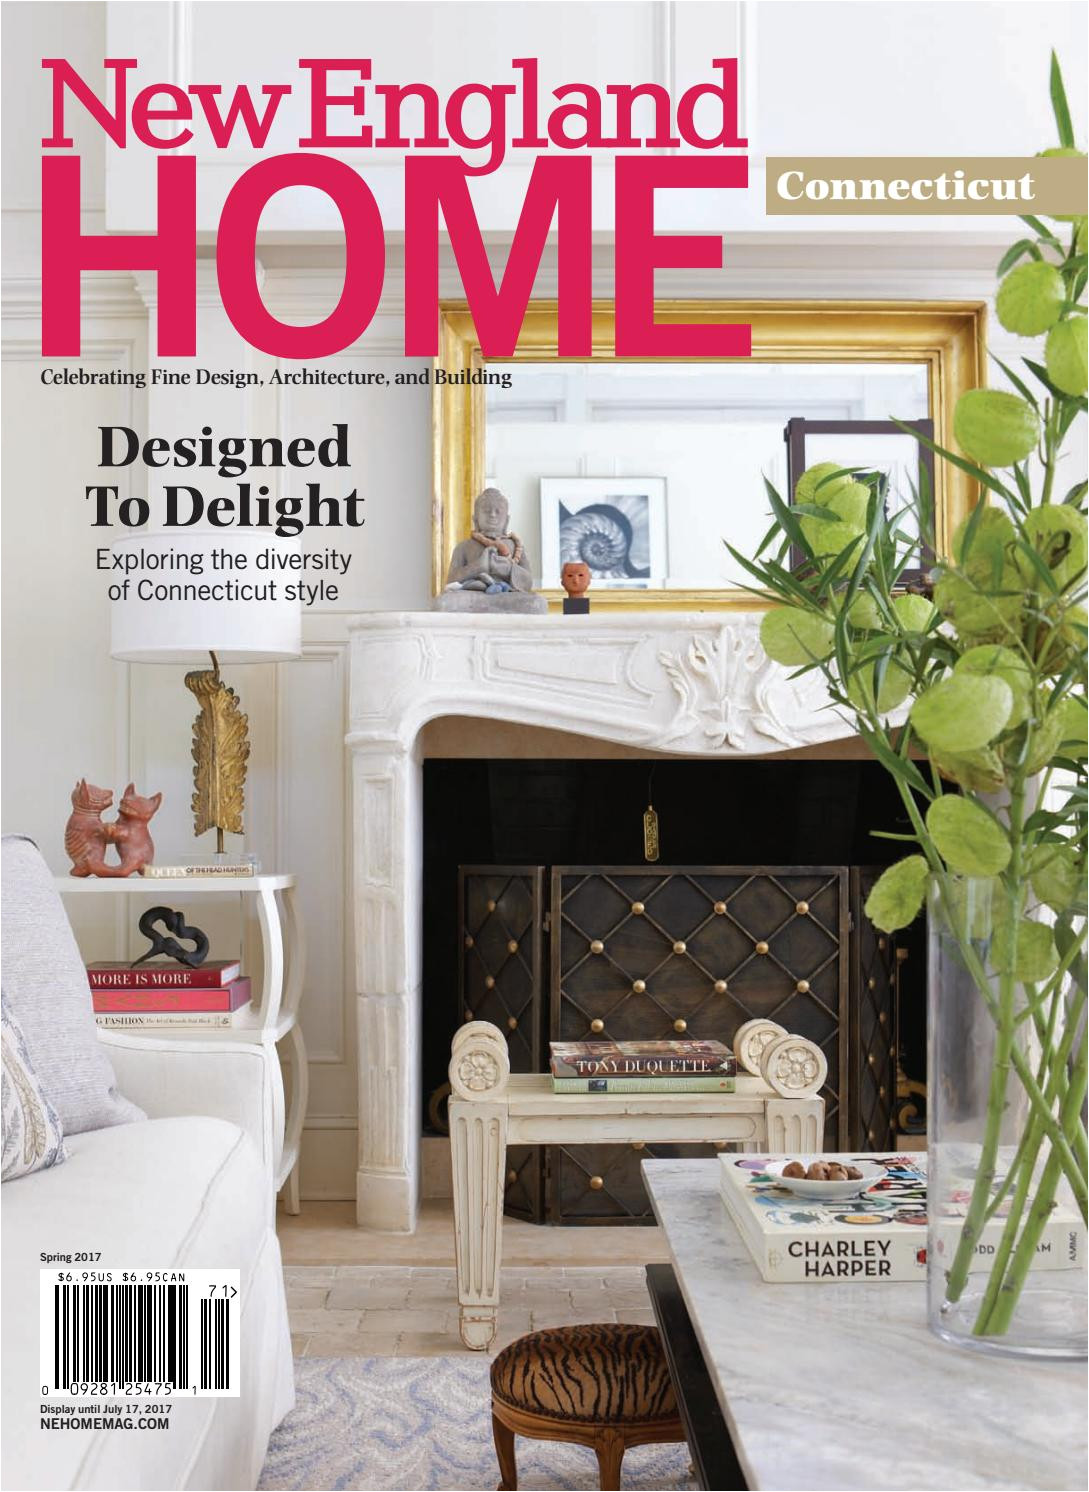 new england home connecticut spring 2017 by new england home magazine llc issuu